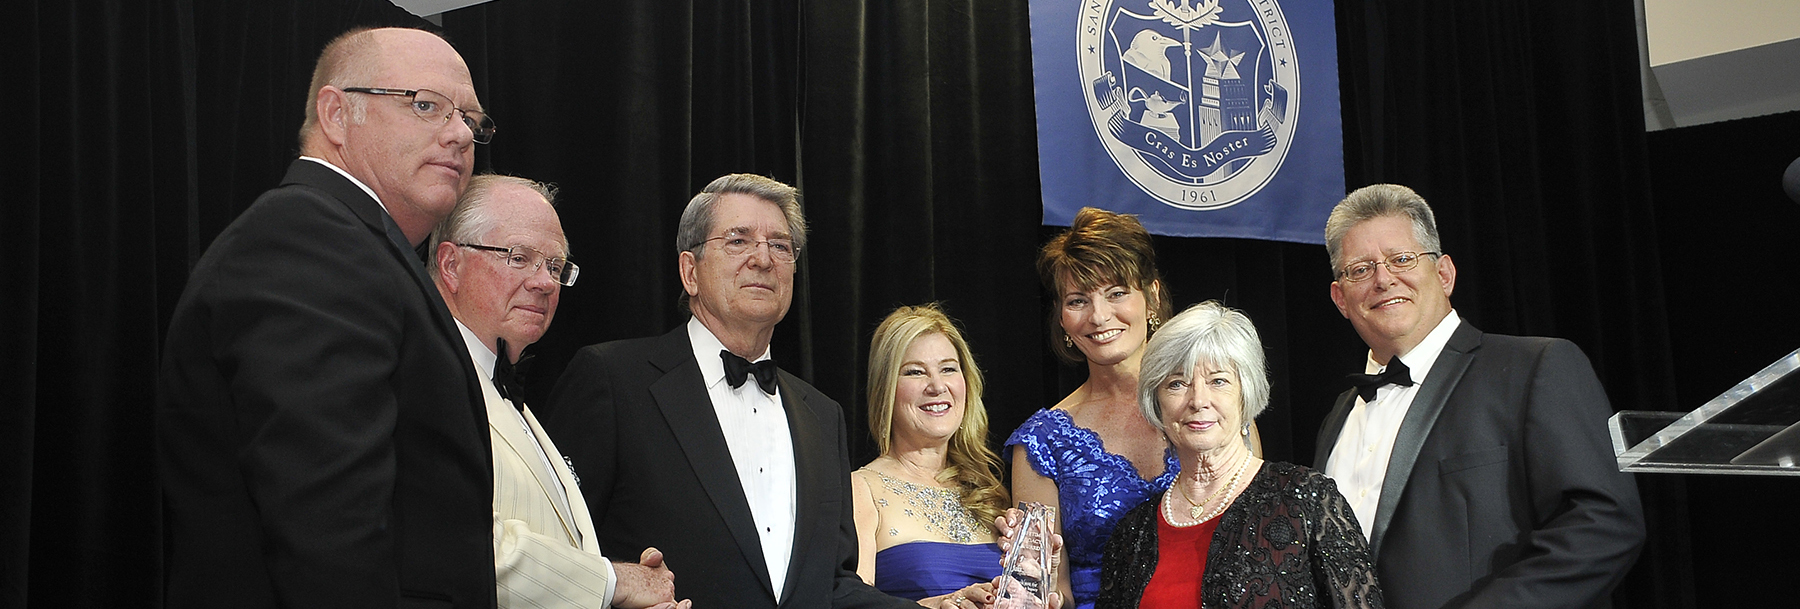 Gala raises $300,000 for student scholarships